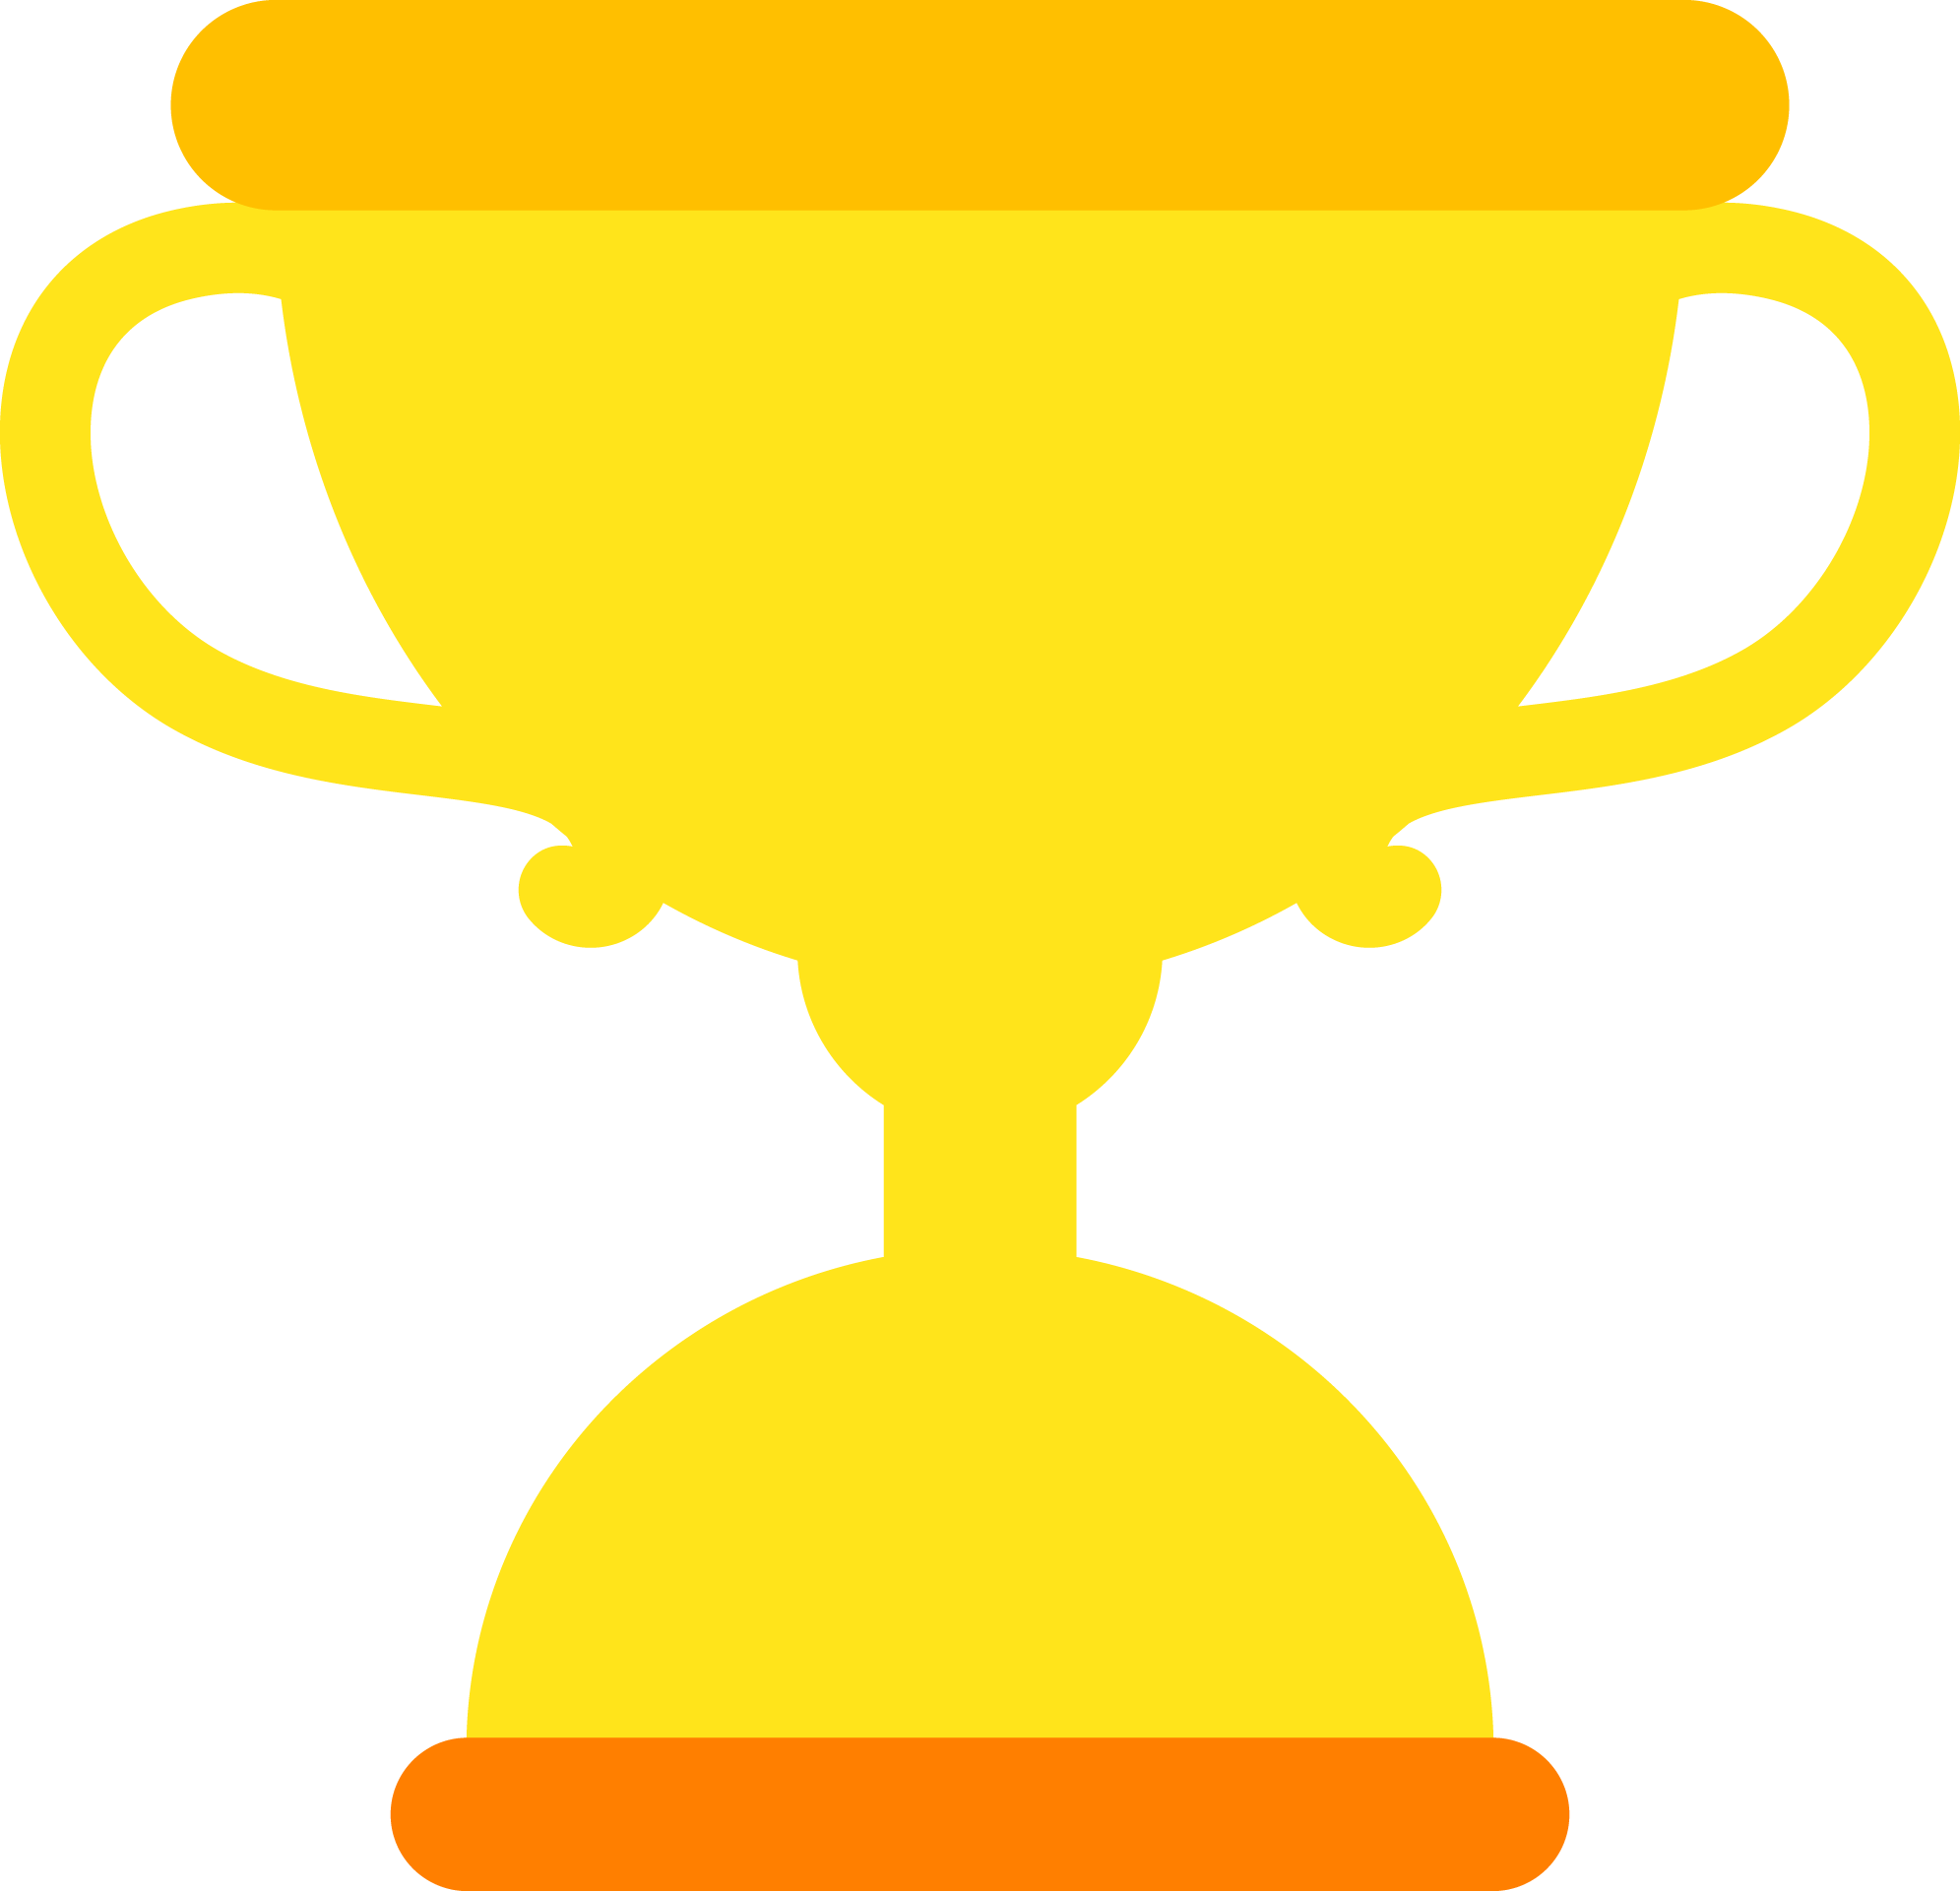 Math clipart trophy, Math trophy Transparent FREE for.